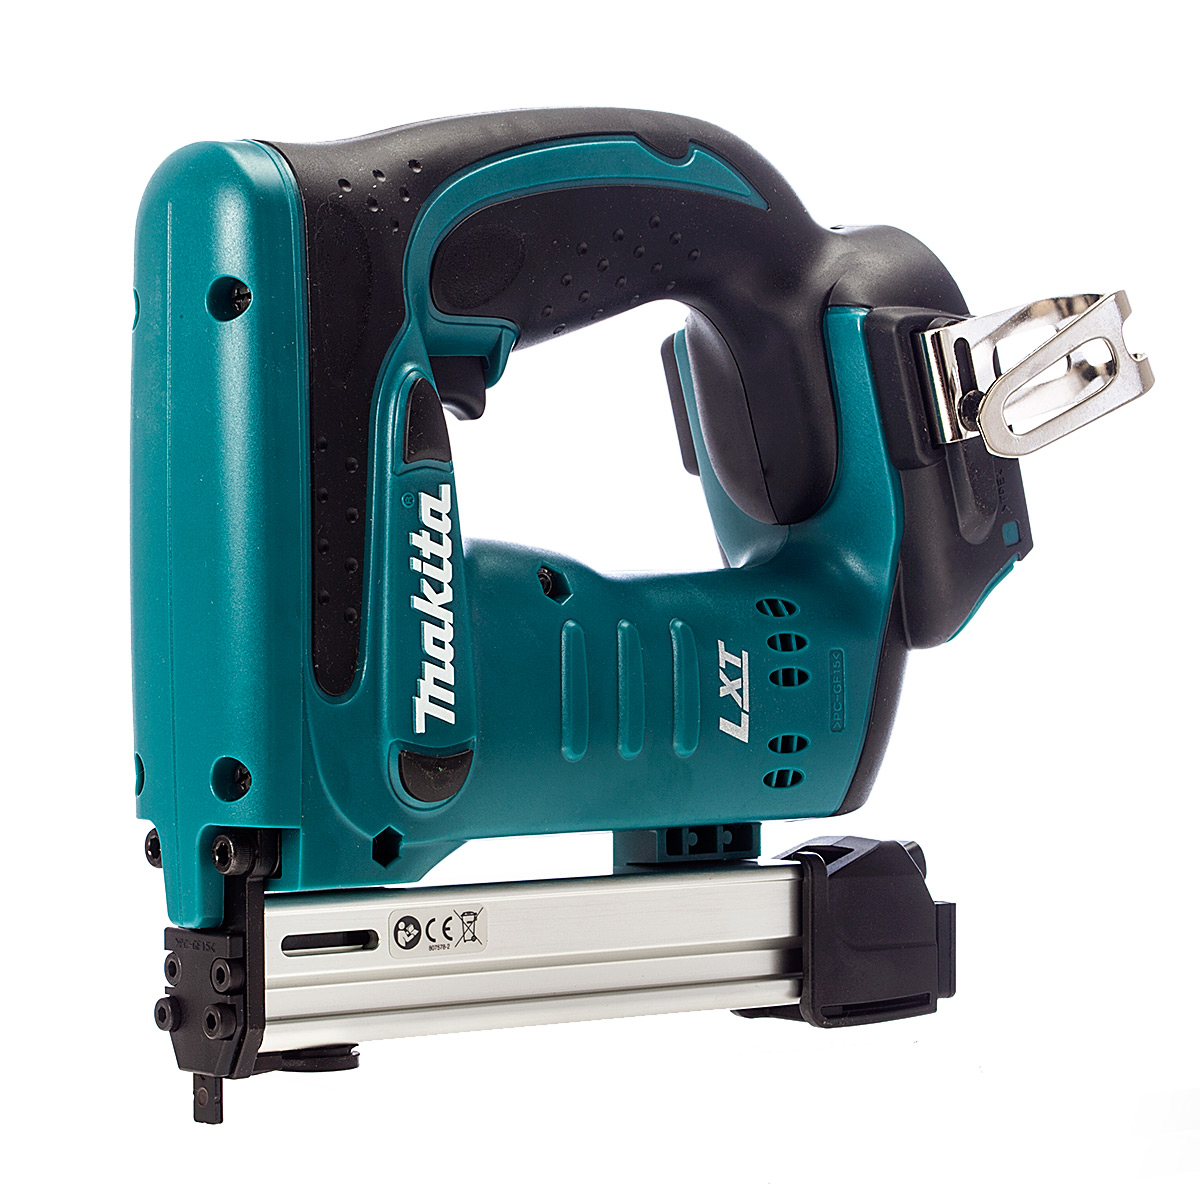 MAKITA DST221Z 18V LITHIUM-ION STAPLER (BODY ONLY)